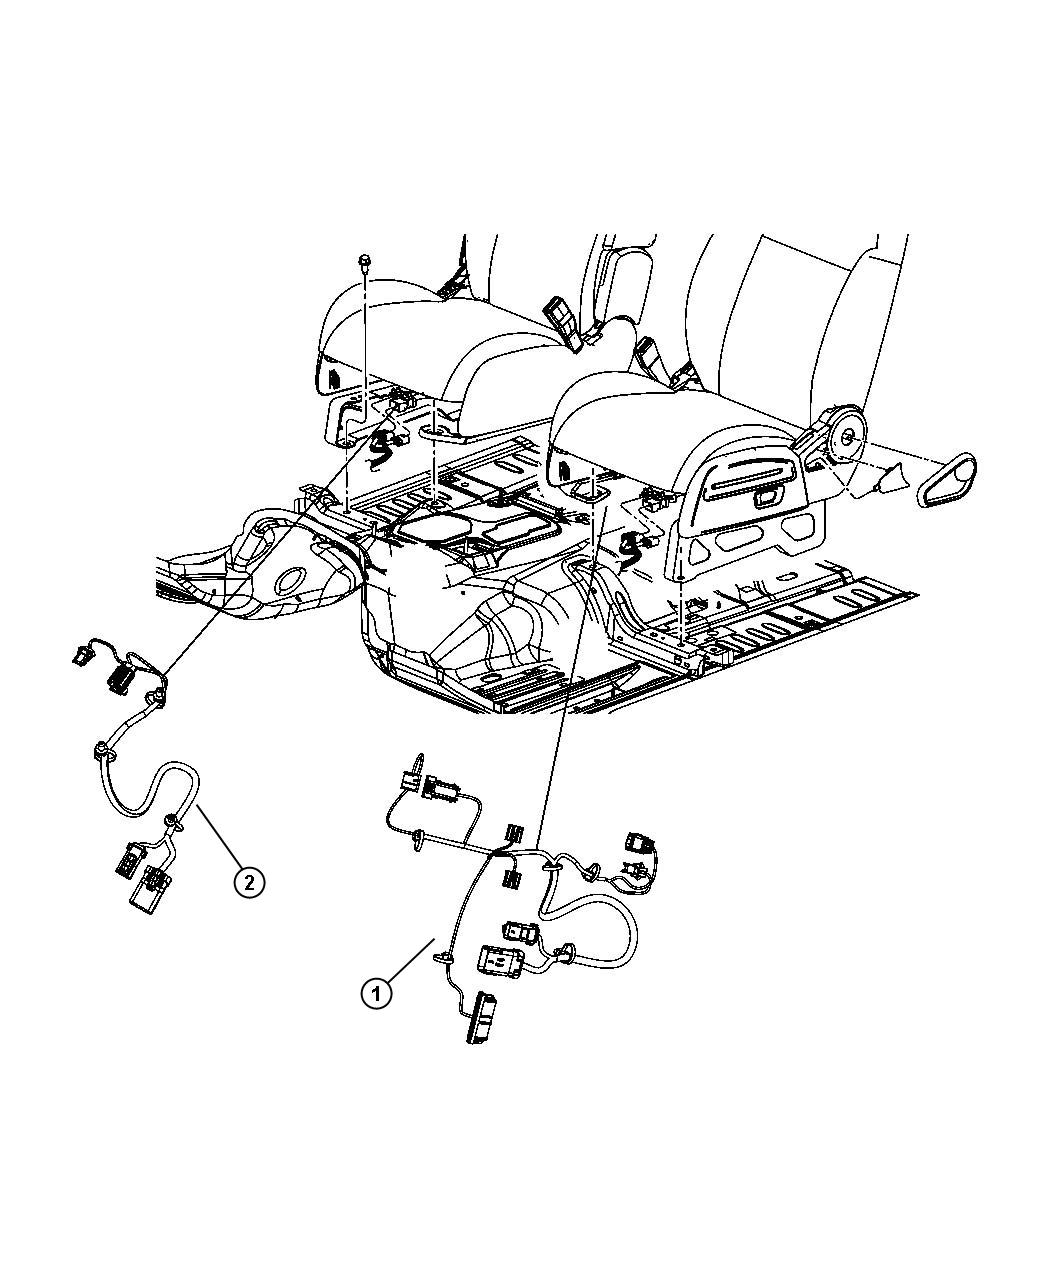 Jeep Compass Wiring Seat Heated Seat Track Position